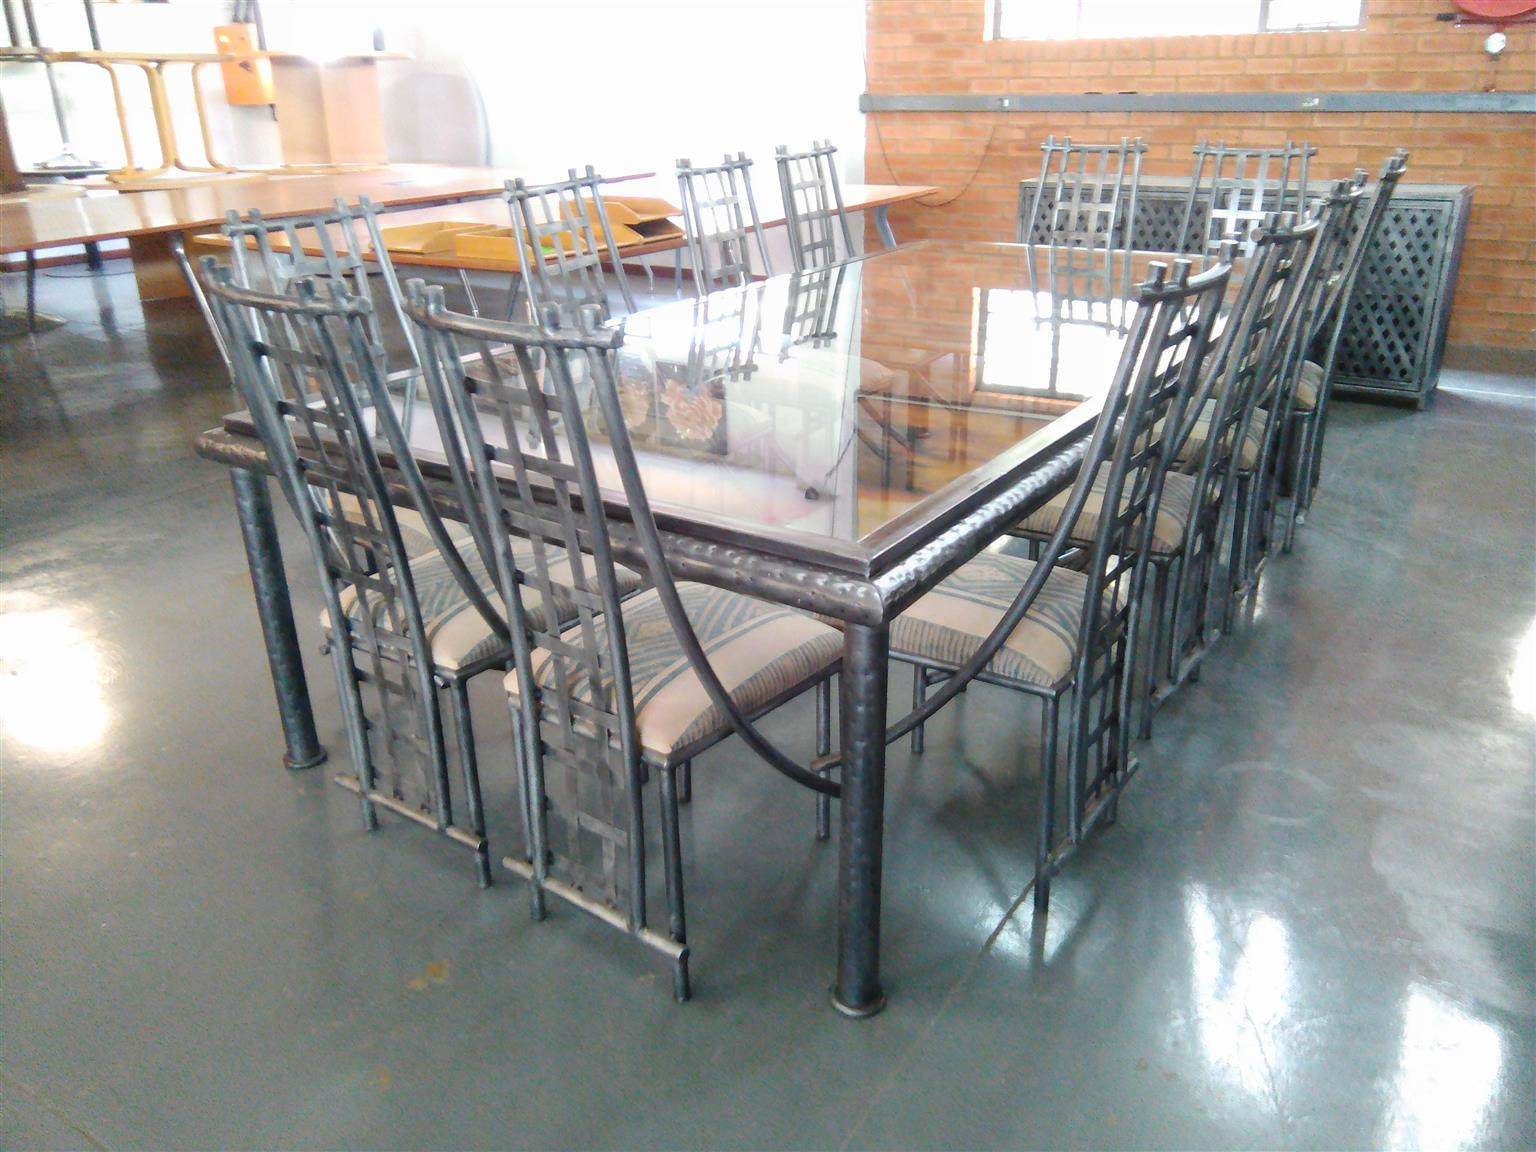 Seater Glass Boardroom Table Plus Server And Chairs Junk Mail - Glass boardroom table